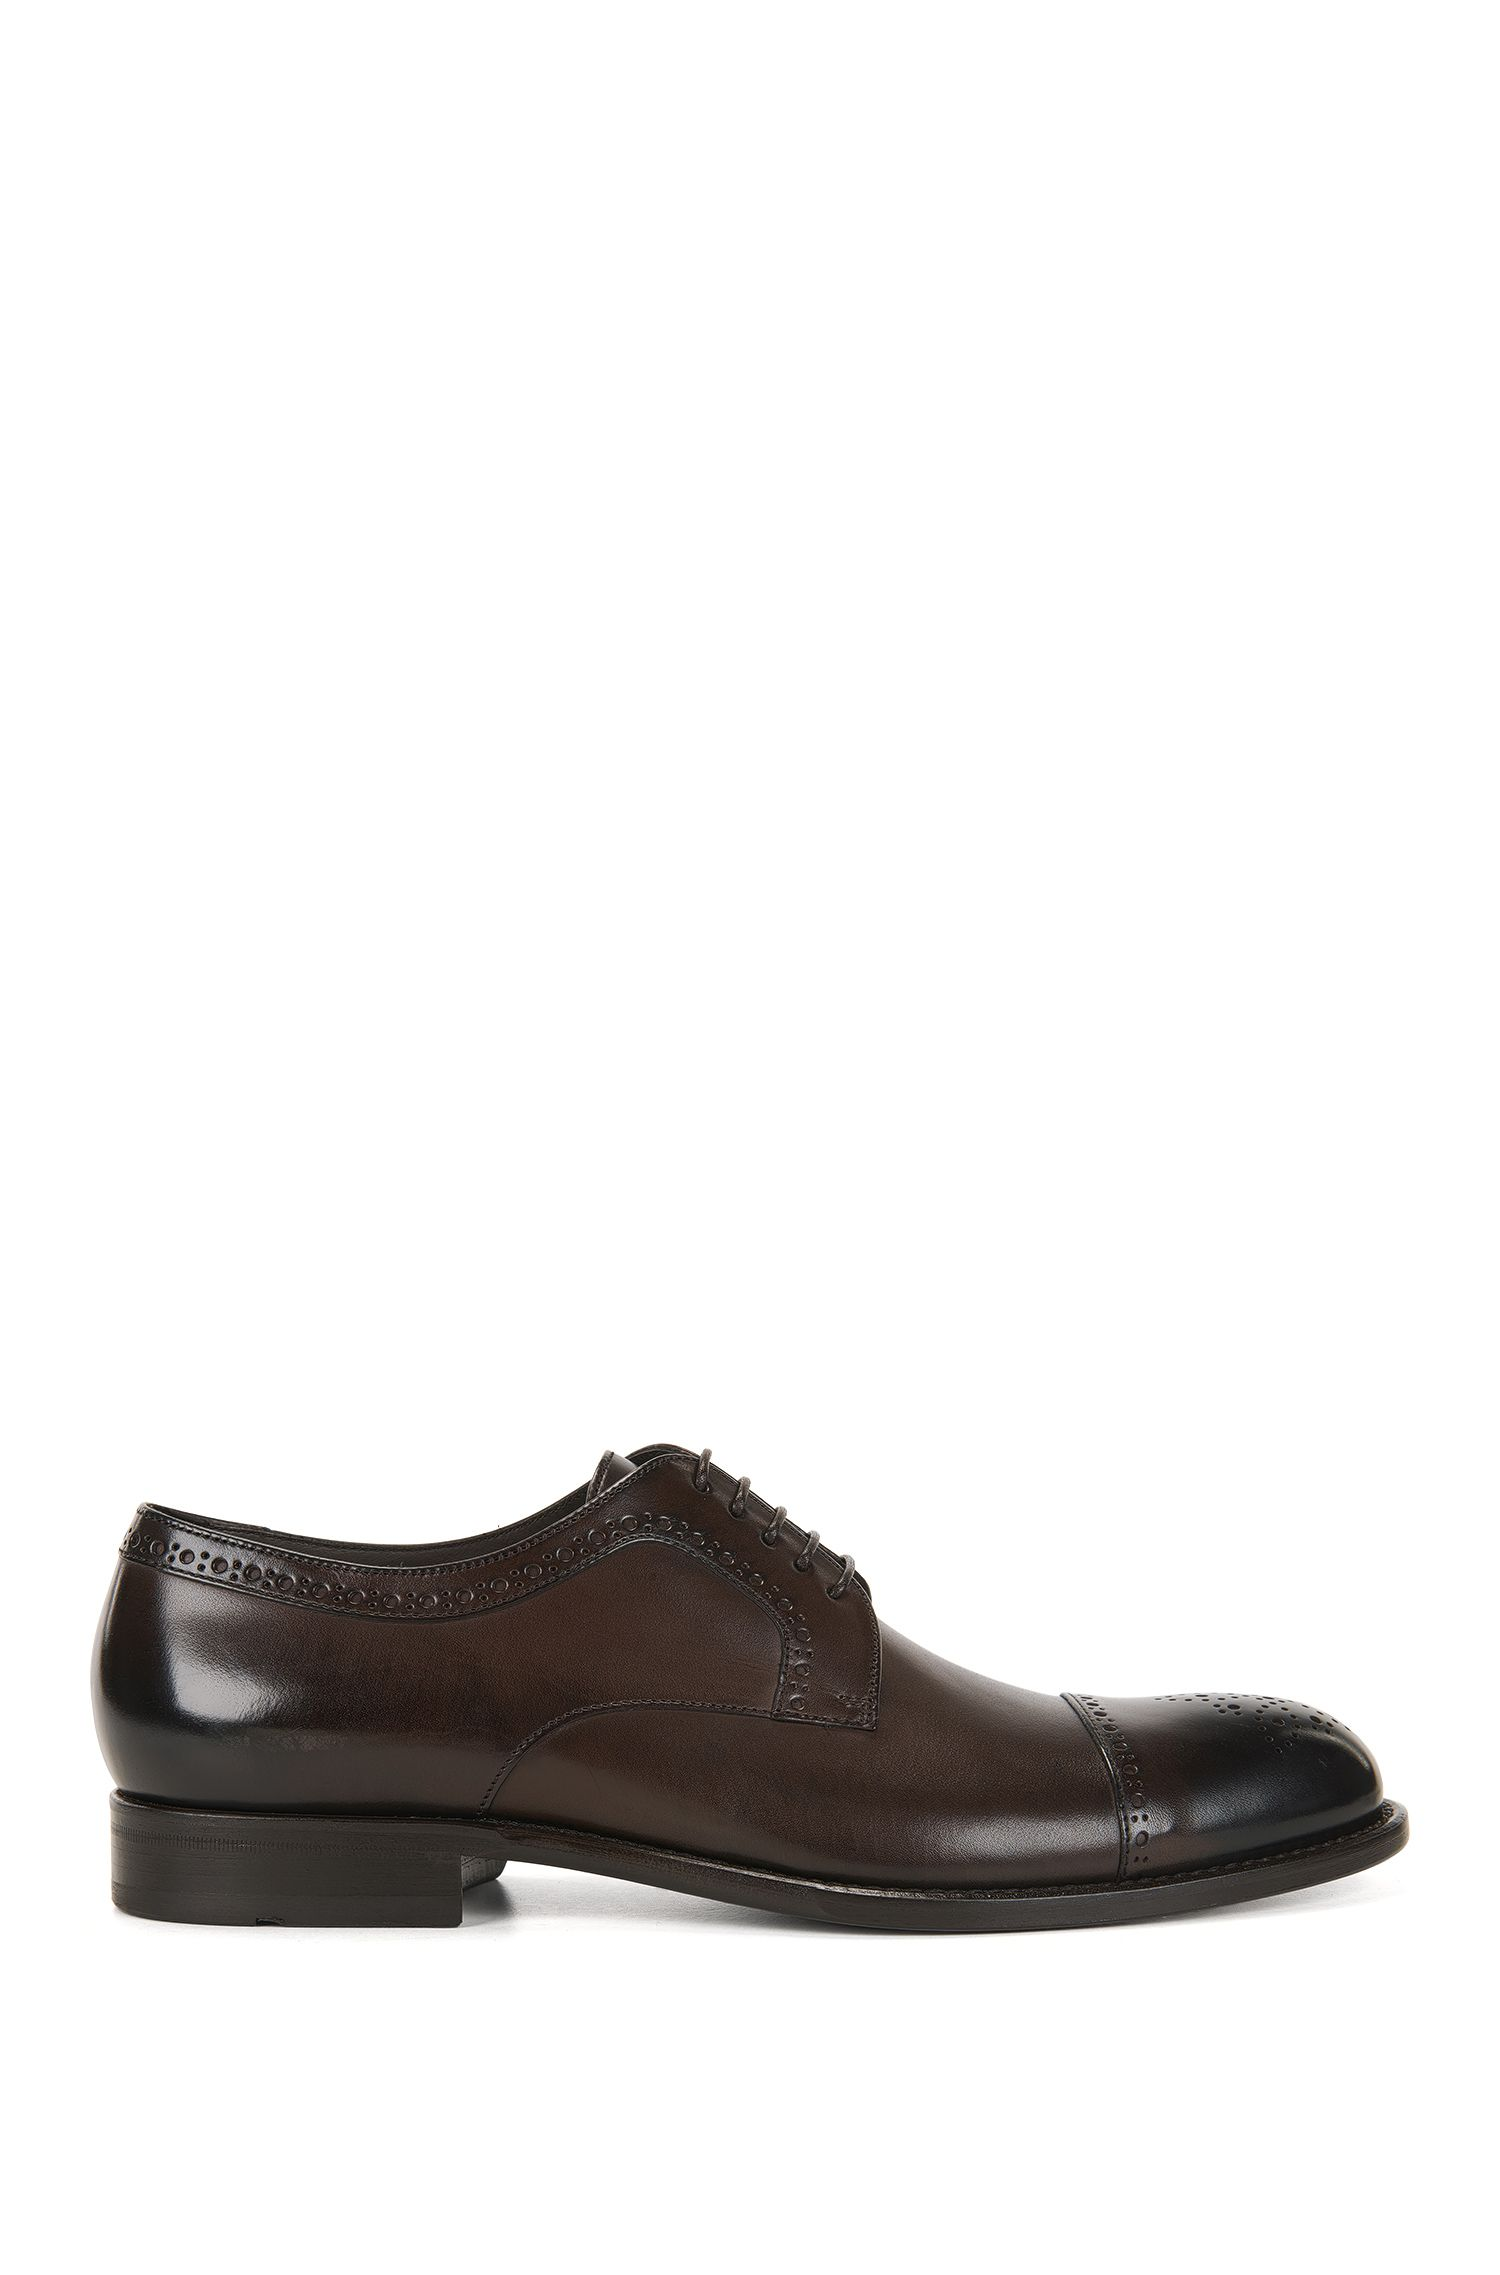 Leather Derby shoes with brogue details